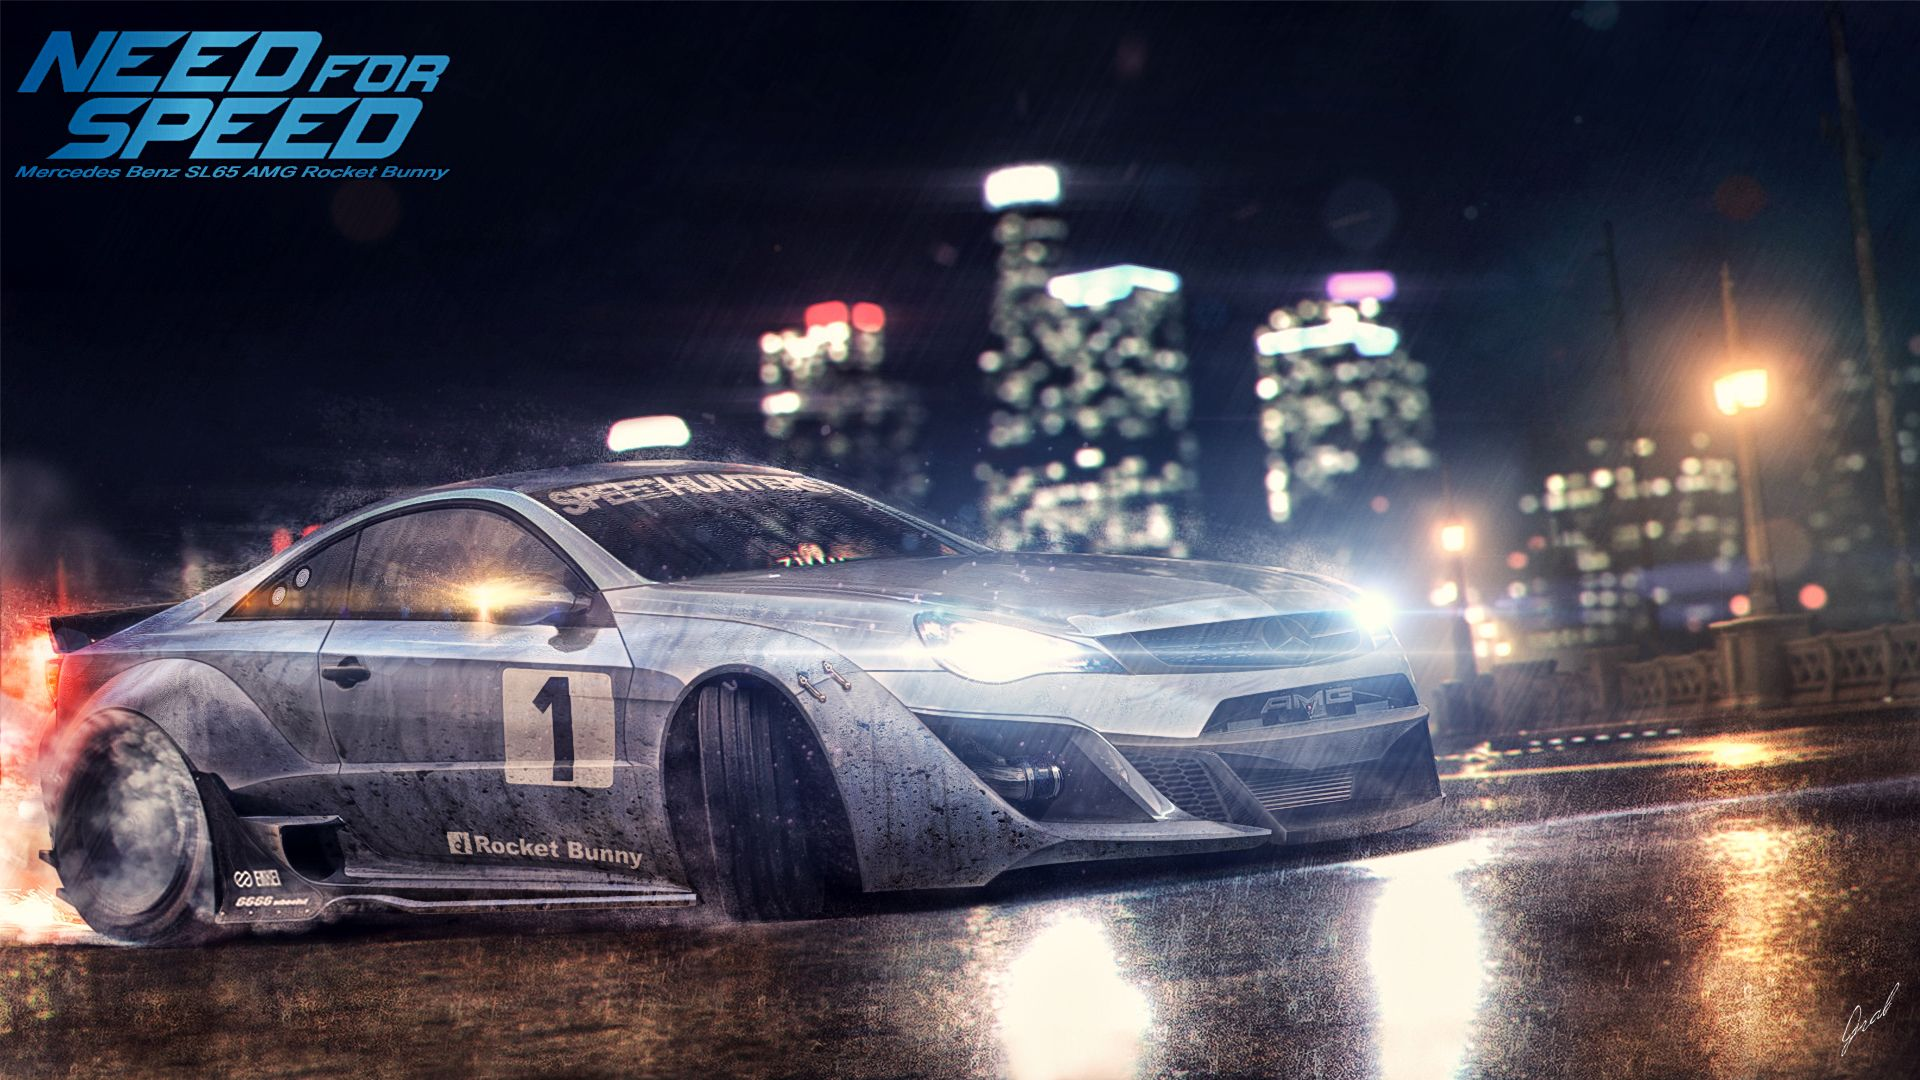 Mercedes Benz SL65 AMG NFS Style by xGrabxviantart on